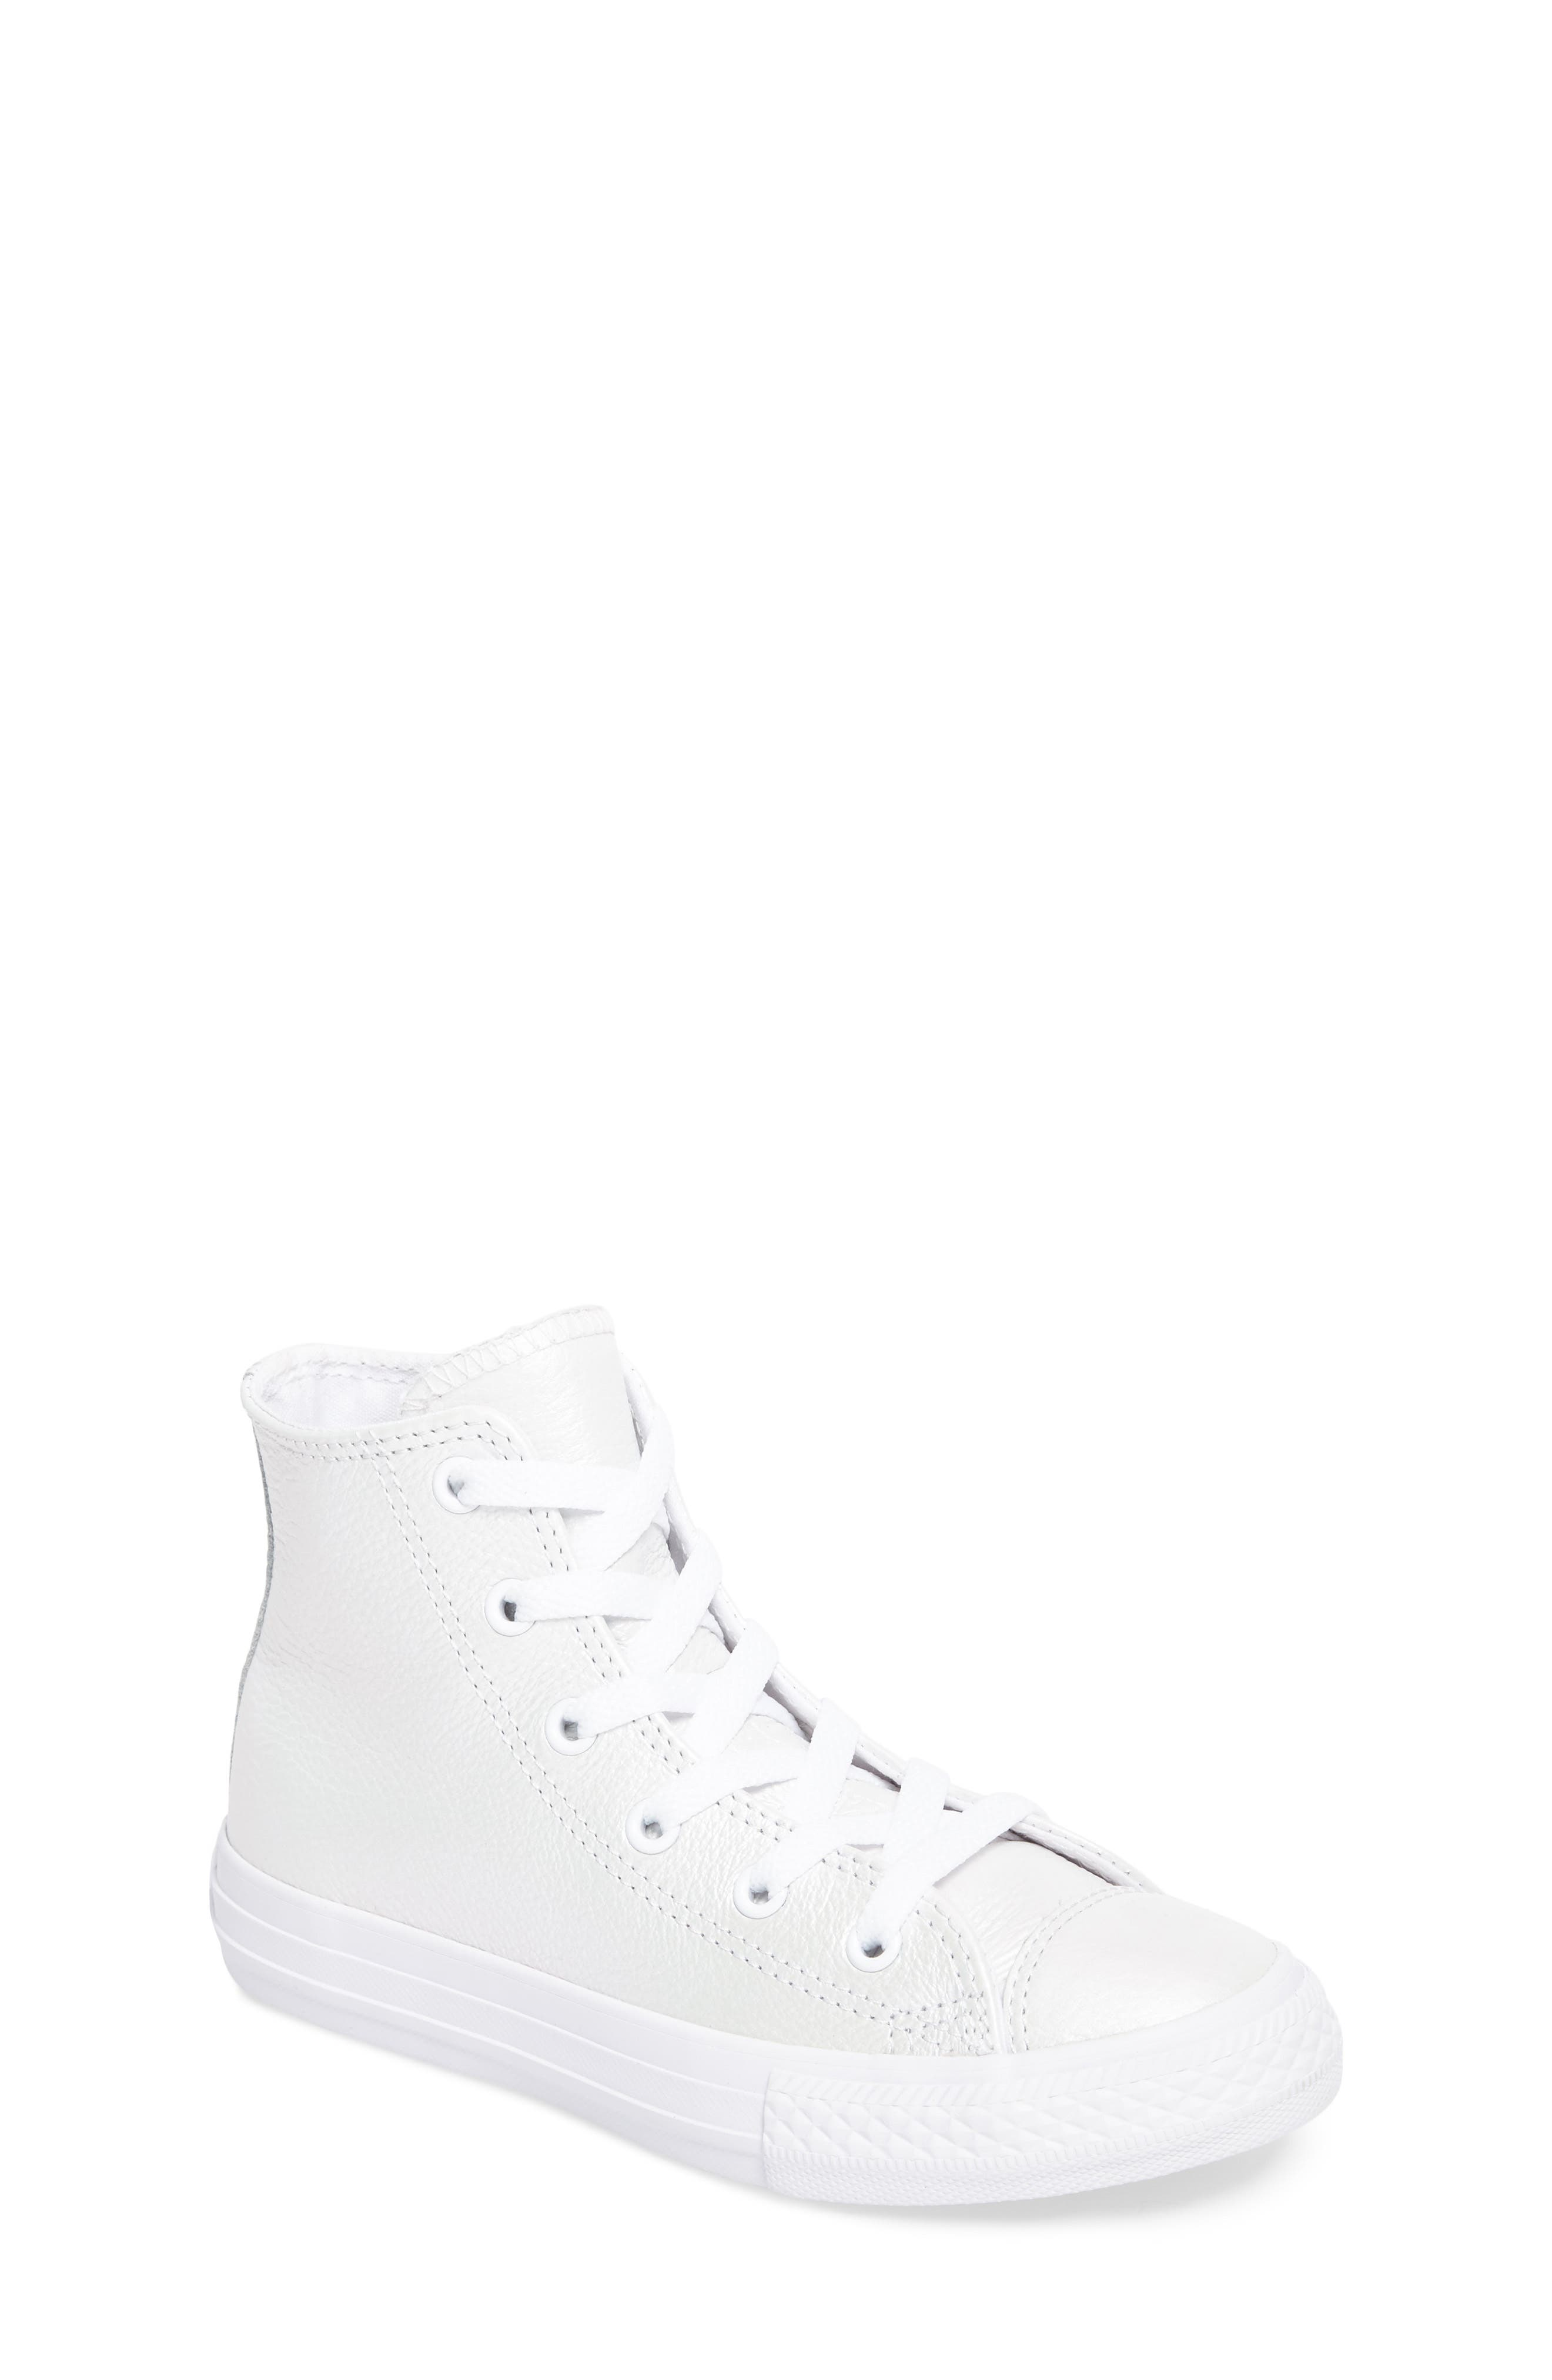 Chuck Taylor<sup>®</sup> All Star<sup>®</sup> Iridescent Leather High Top Sneaker,                         Main,                         color, White Leather